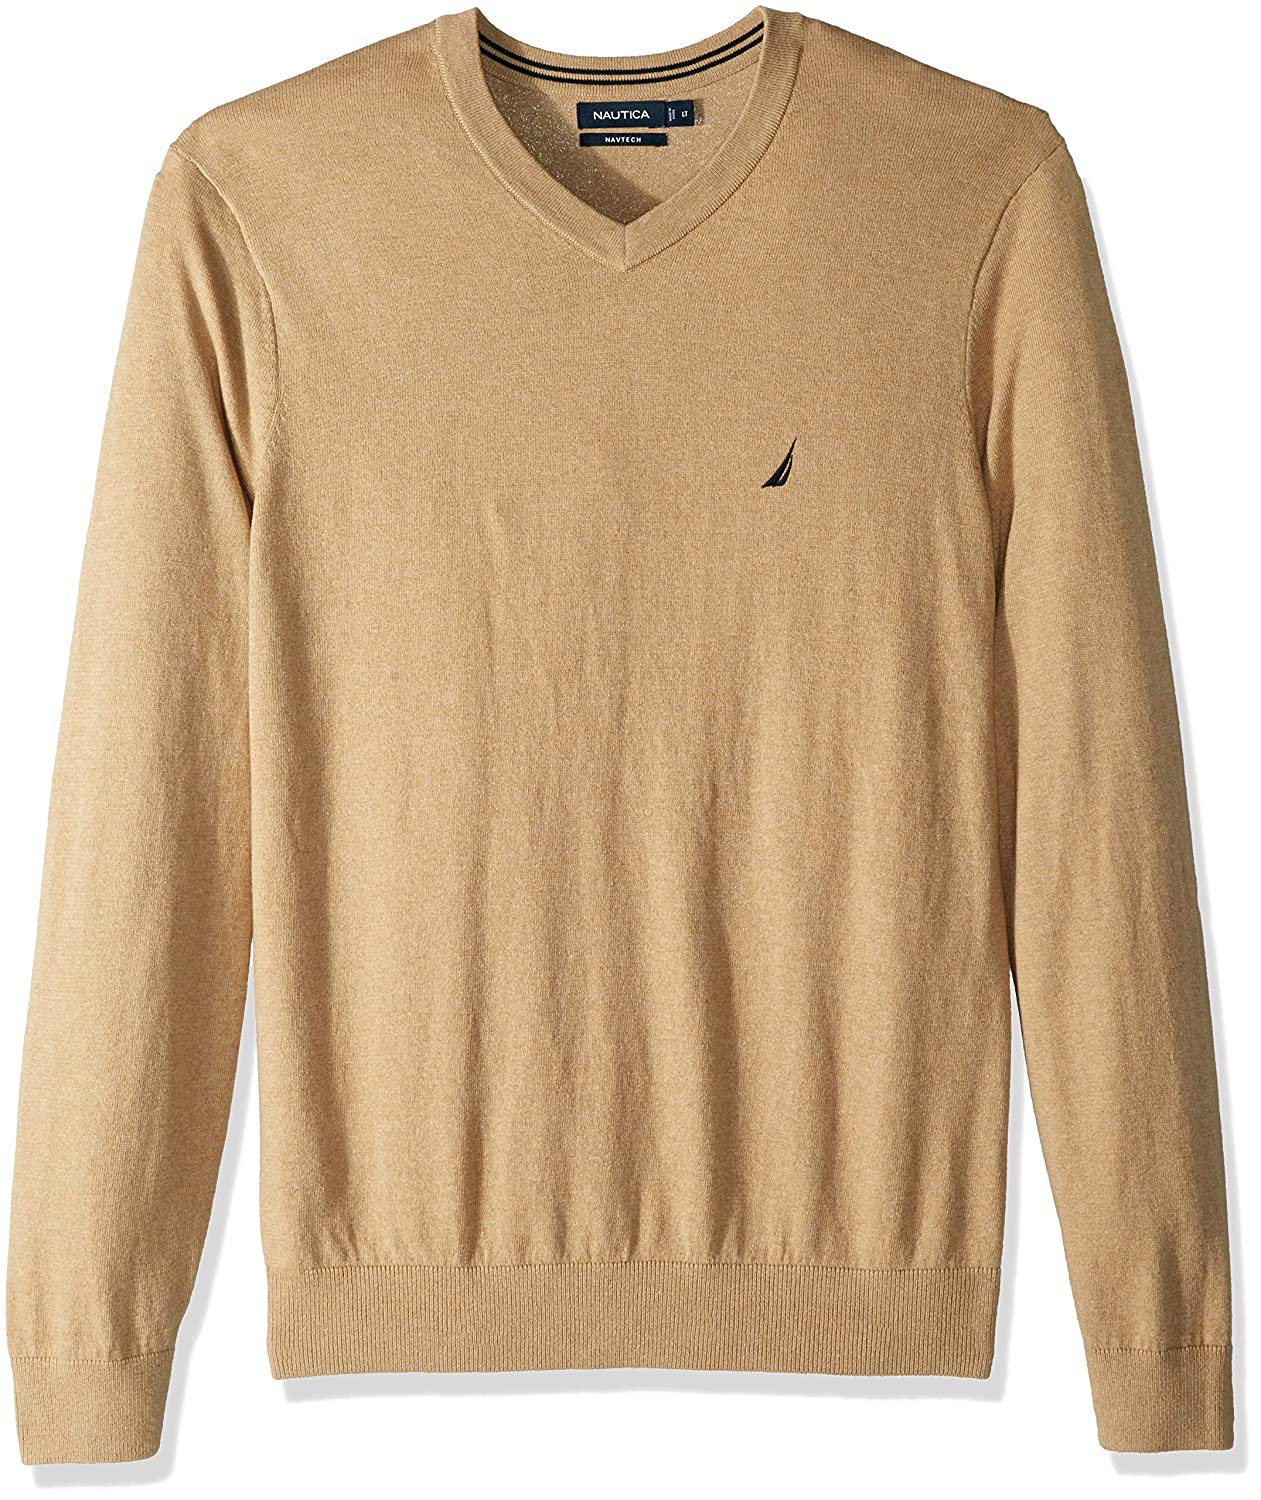 Coastal Camel Heather XL Nautica Homme N83100 Sweat